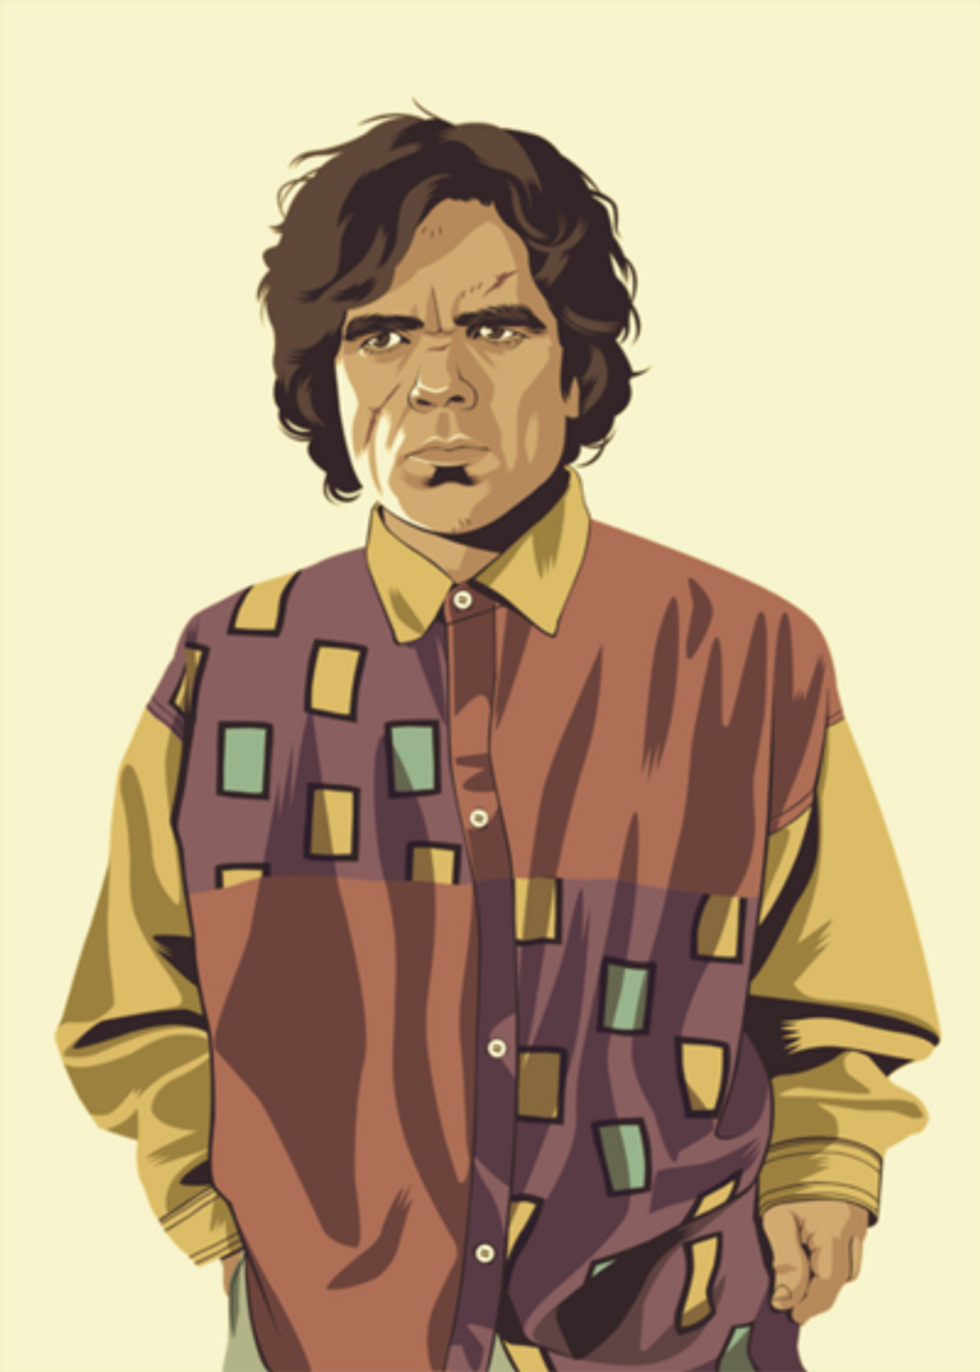 Game of Thrones characters if they were from the 1980's and 90's [9 pics]